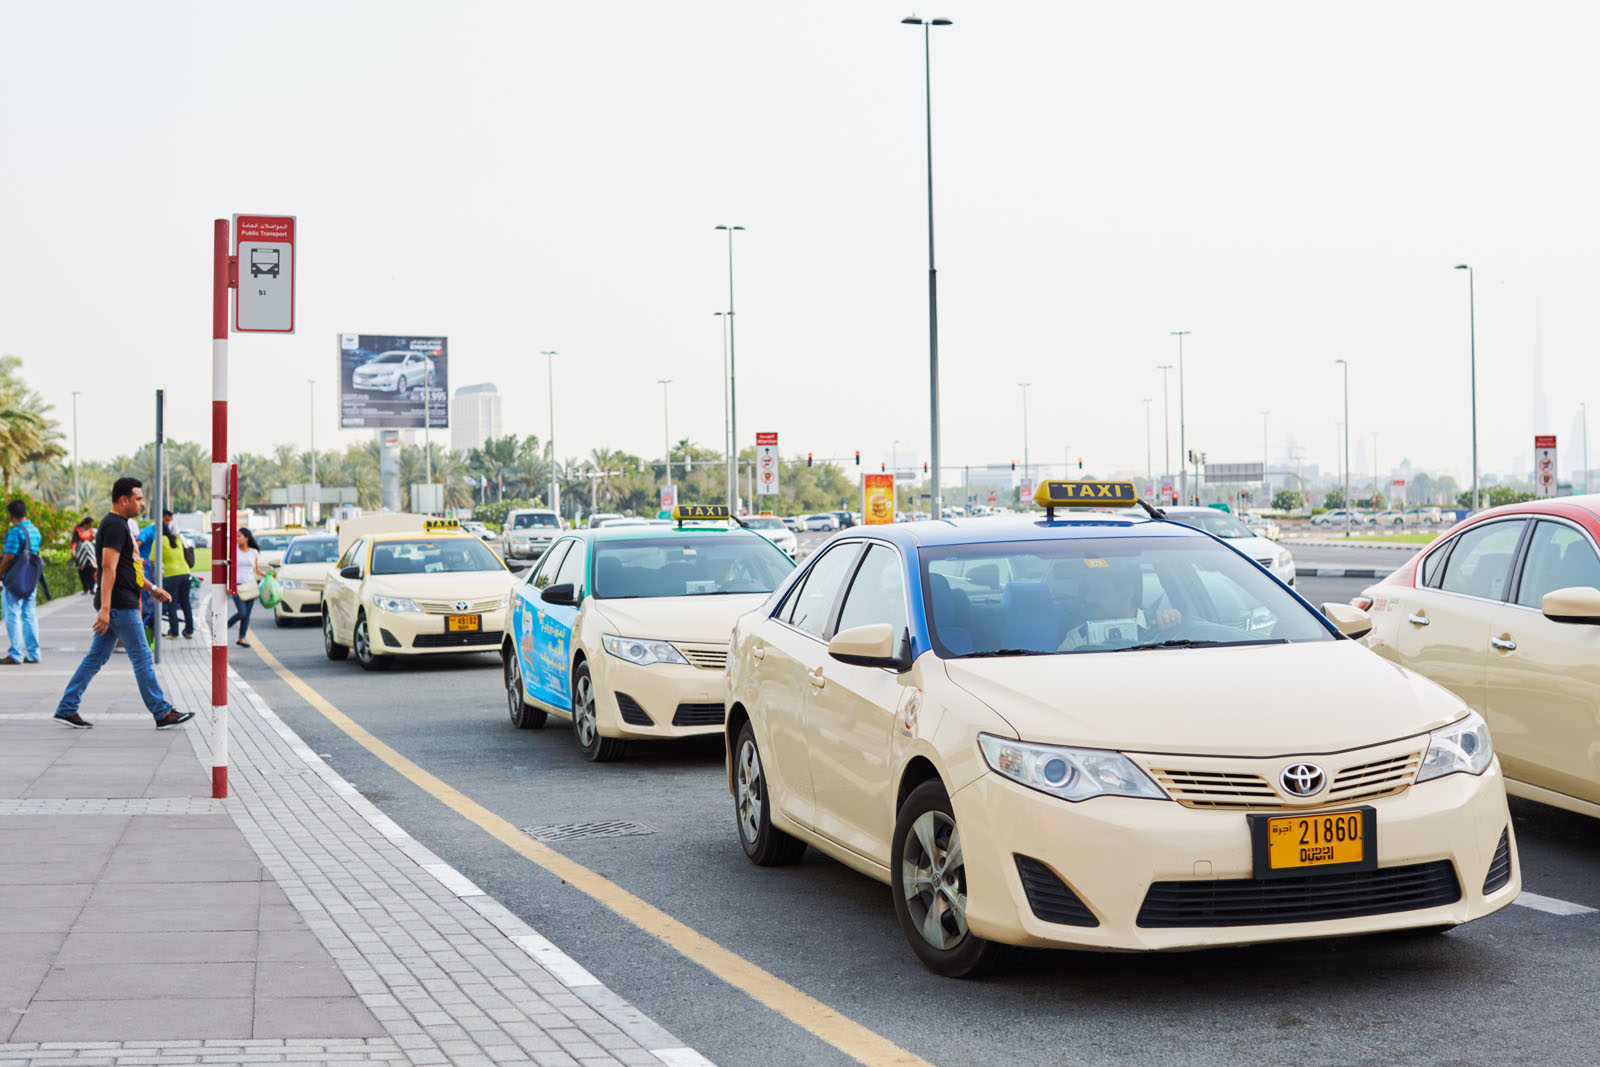 Dubai, United Arab Emirates - May 6, 2016: Blue and red top taxis at Deira City Centre.The Cars Taxis Corporation operates cream-coloured blue roof taxis and Dubai Taxi Corporation operates cream-coloured red roof taxis.The meter generally begins as Dhs. 12.00 when a requesting a cab from the call center, and 5.00 Dhs. when taking a taxi on the road and is generally charged by distance at 1.5 Dhs./km. There are approximately 7900 taxis located in the city.